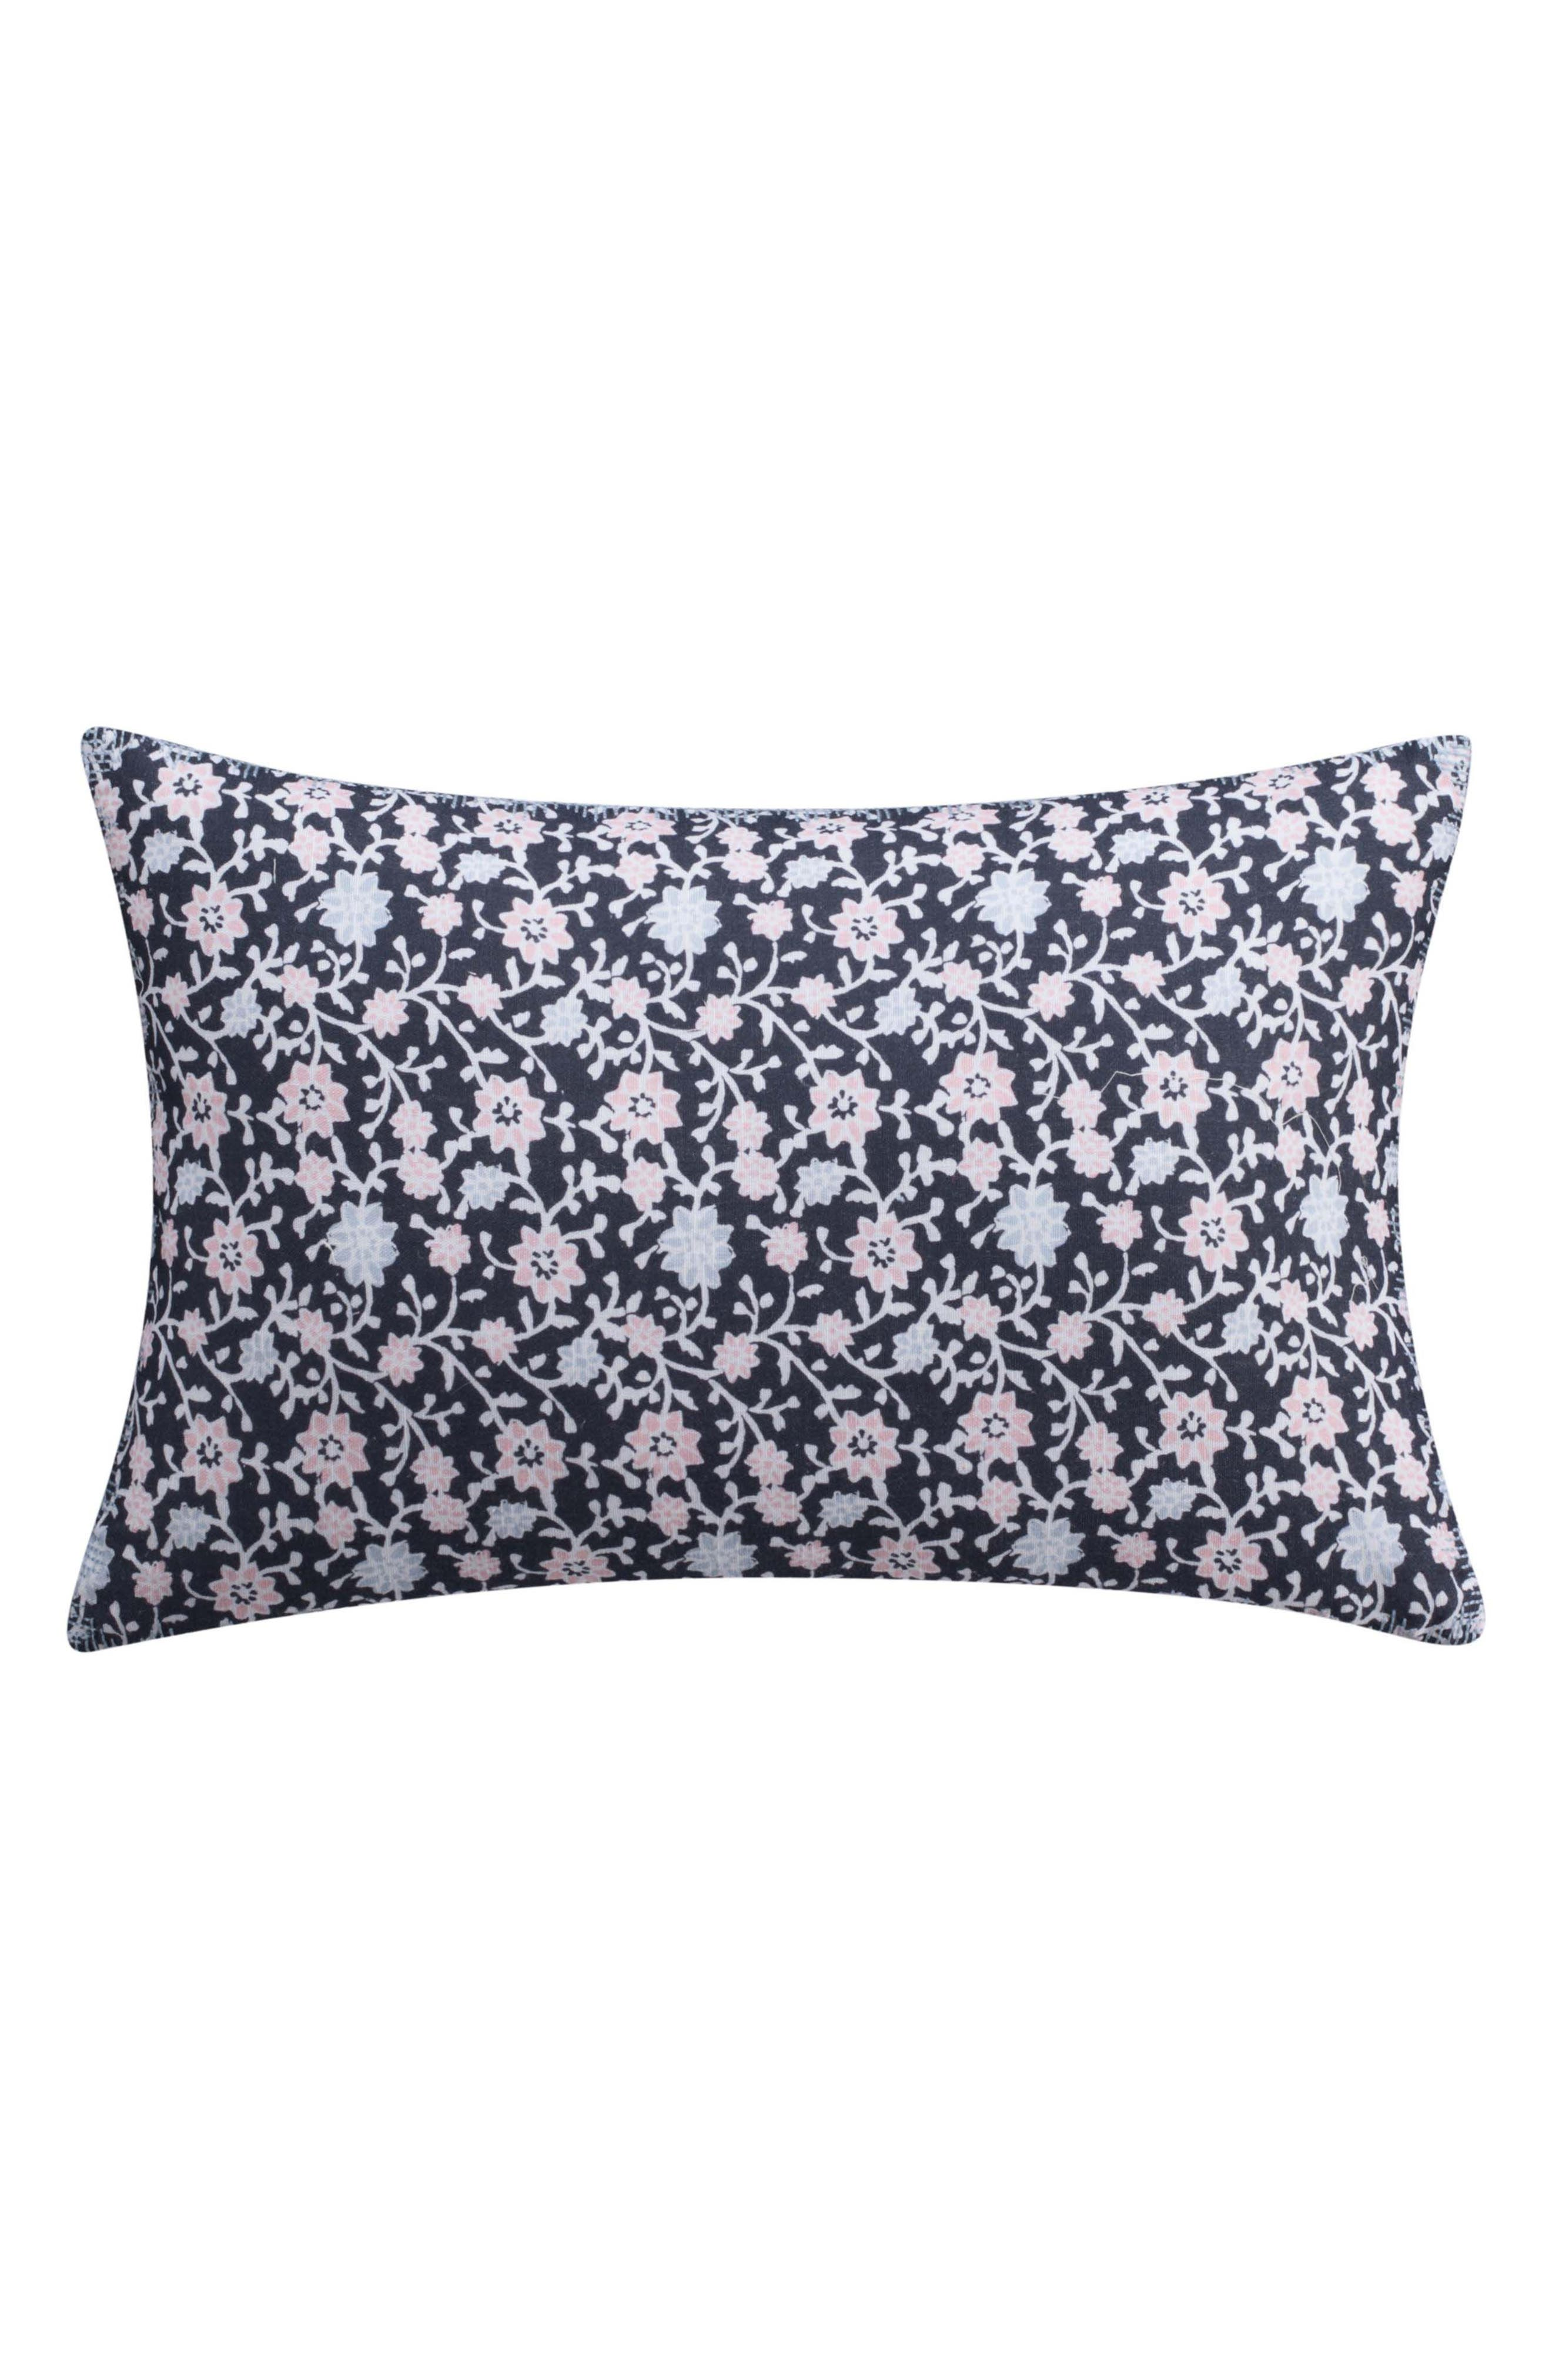 Main Image - cupcakes and cashmere Floral Print Accent Pillow